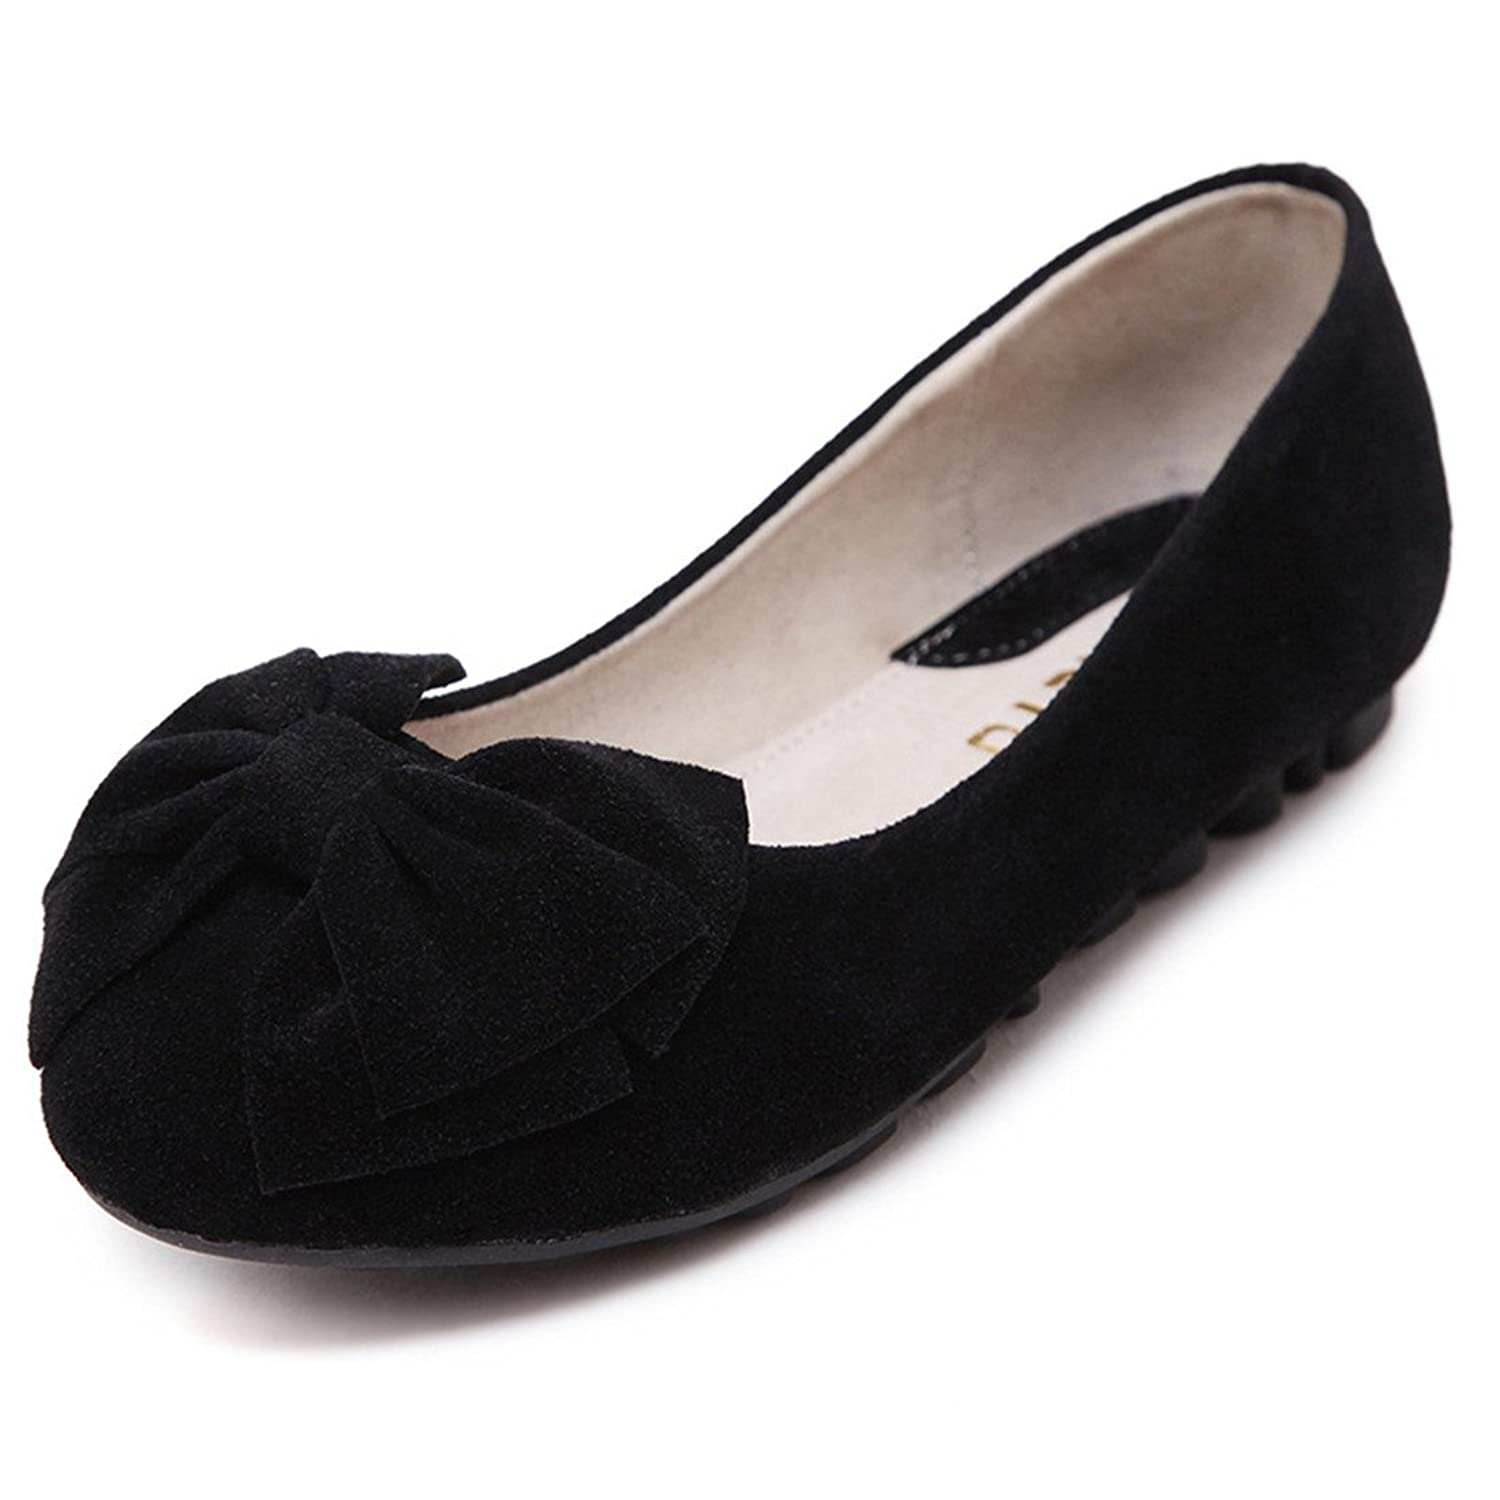 Women's Classic Casual Flats - Soft Slip On Shoes - Comfortable Footwear 678-1